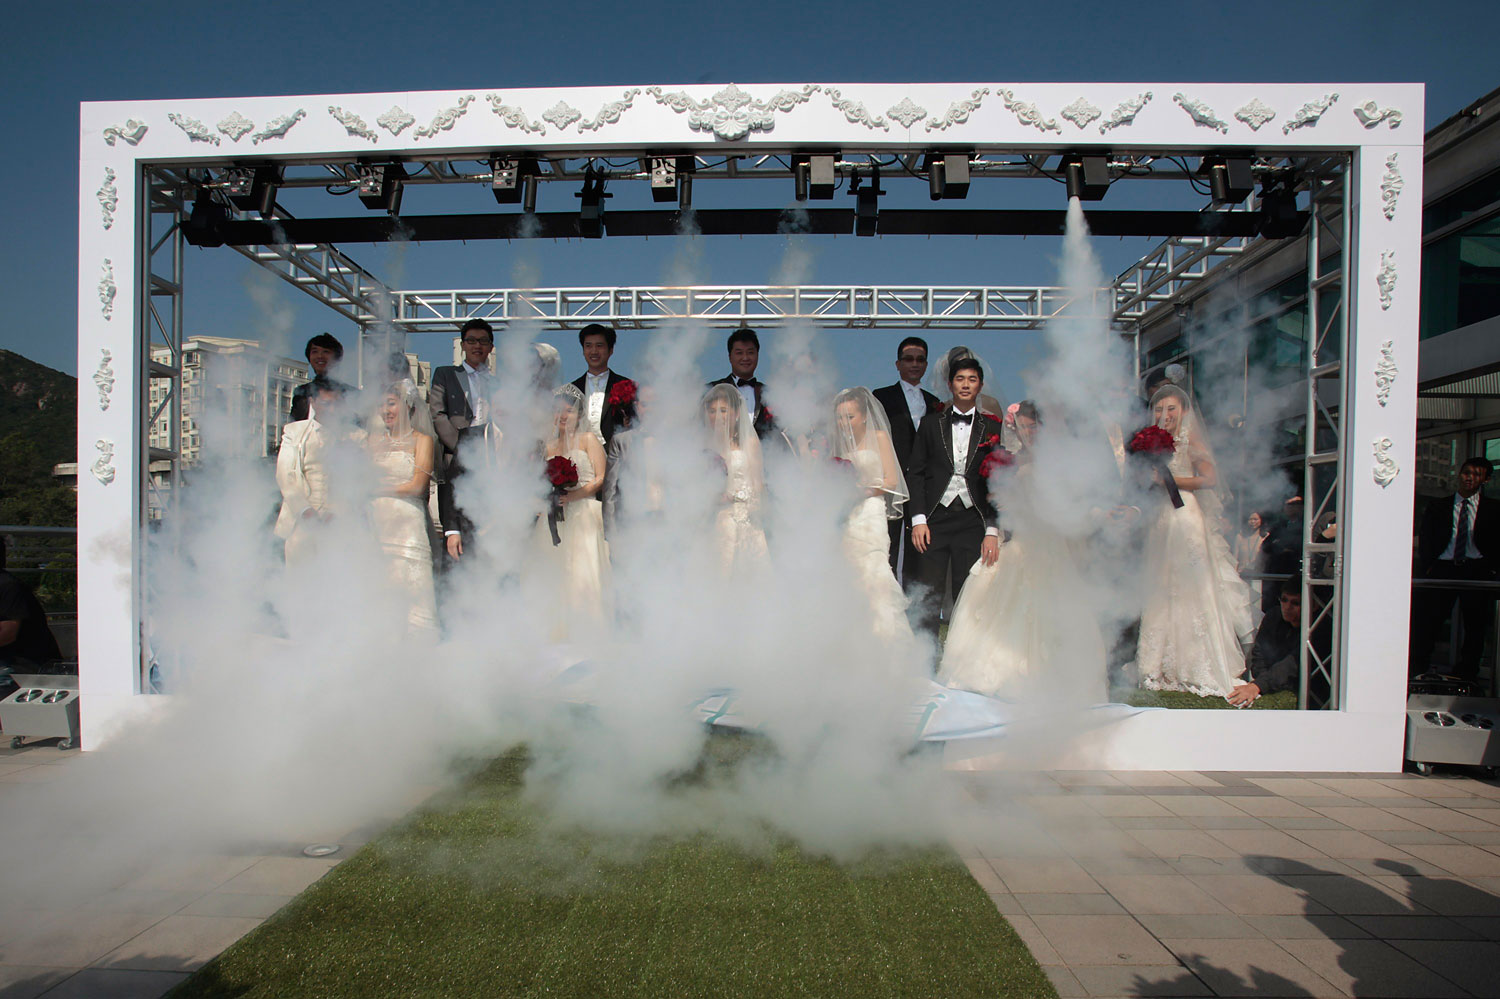 image: Twelve couples attend a wedding ceremony in Hong Kong.